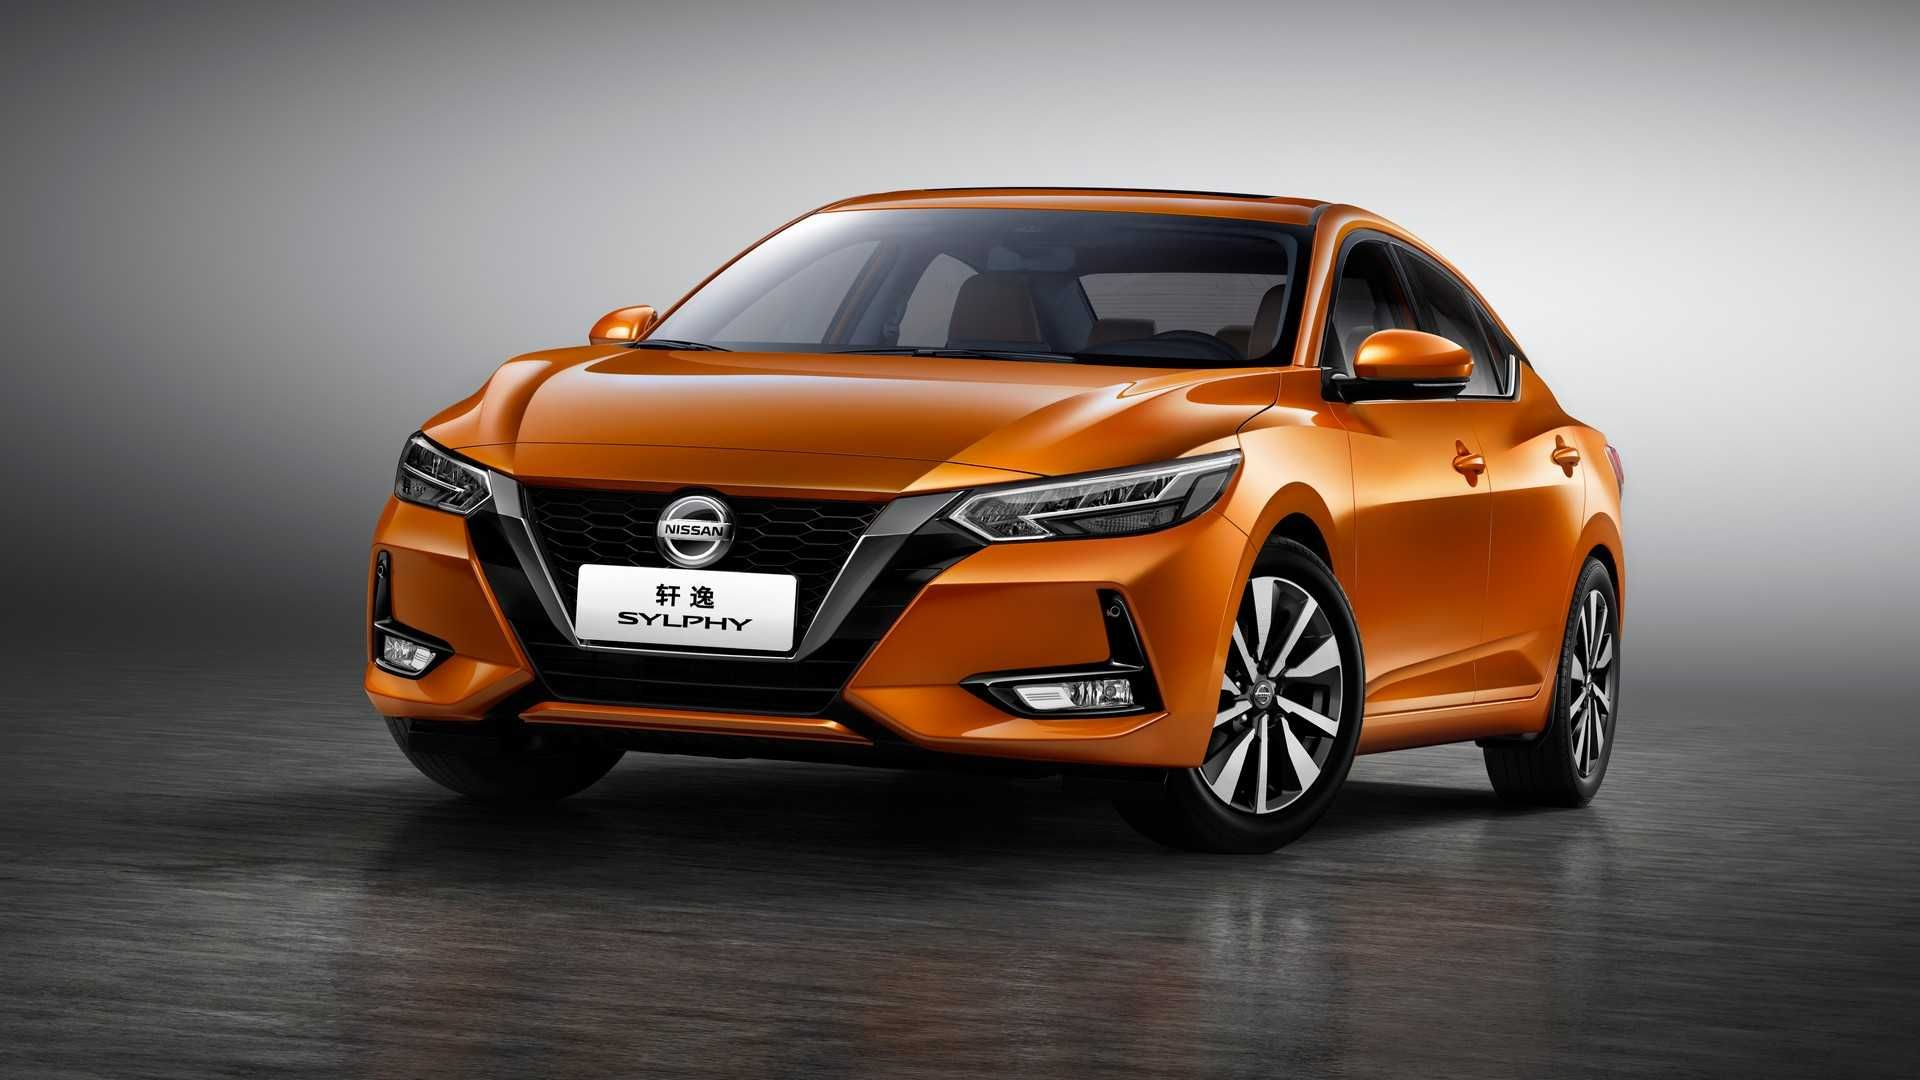 Thanks To The Nissan Sylphy Concept We Have A Nice Preview Of The 2020 Nissan Sentra Top Speed Nissan Sentra Nissan New Nissan